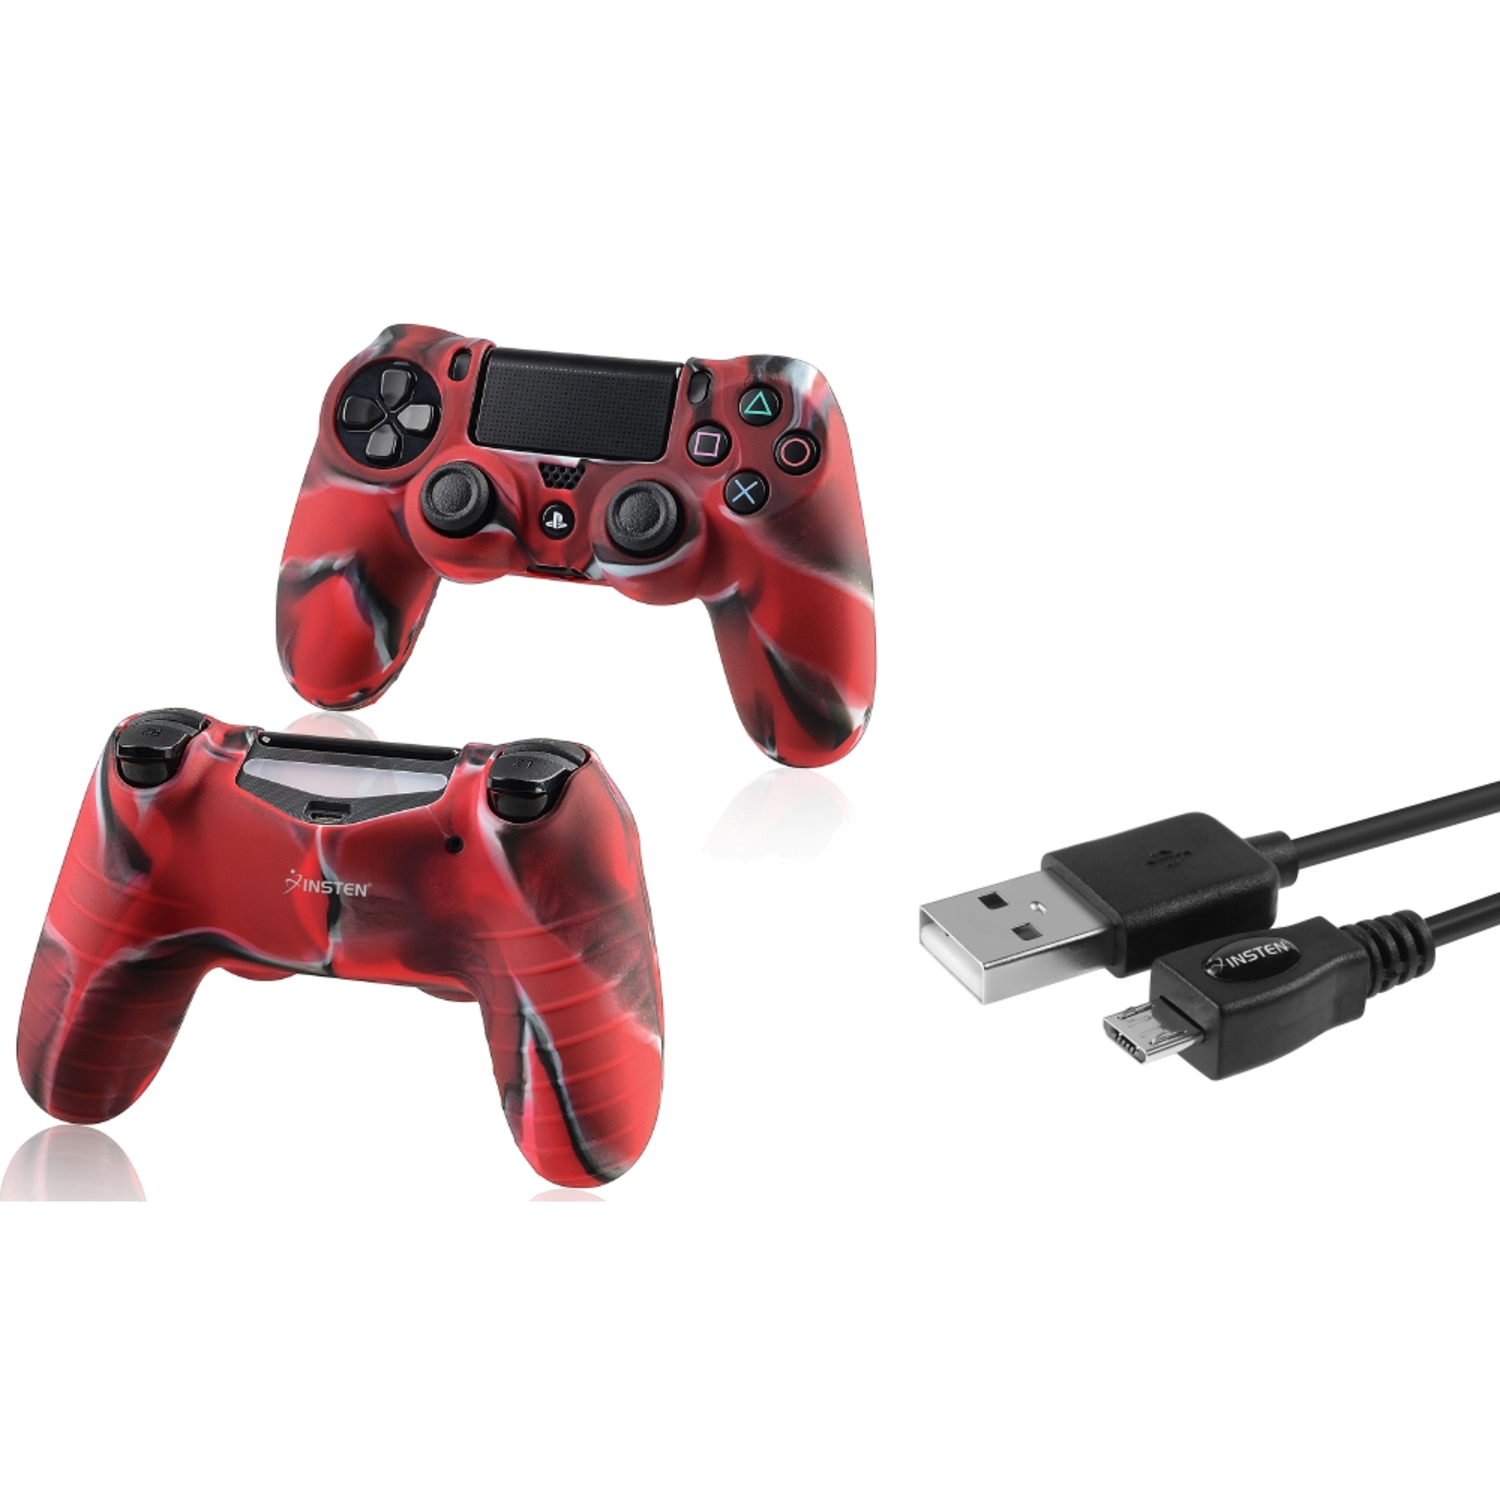 Insten Black 10FT Micro USB Charger Cable+Camouflage Navy Red Skin Case Cover for Sony PS4 Playstation 4 (2-in-1 Accessory Bundle)